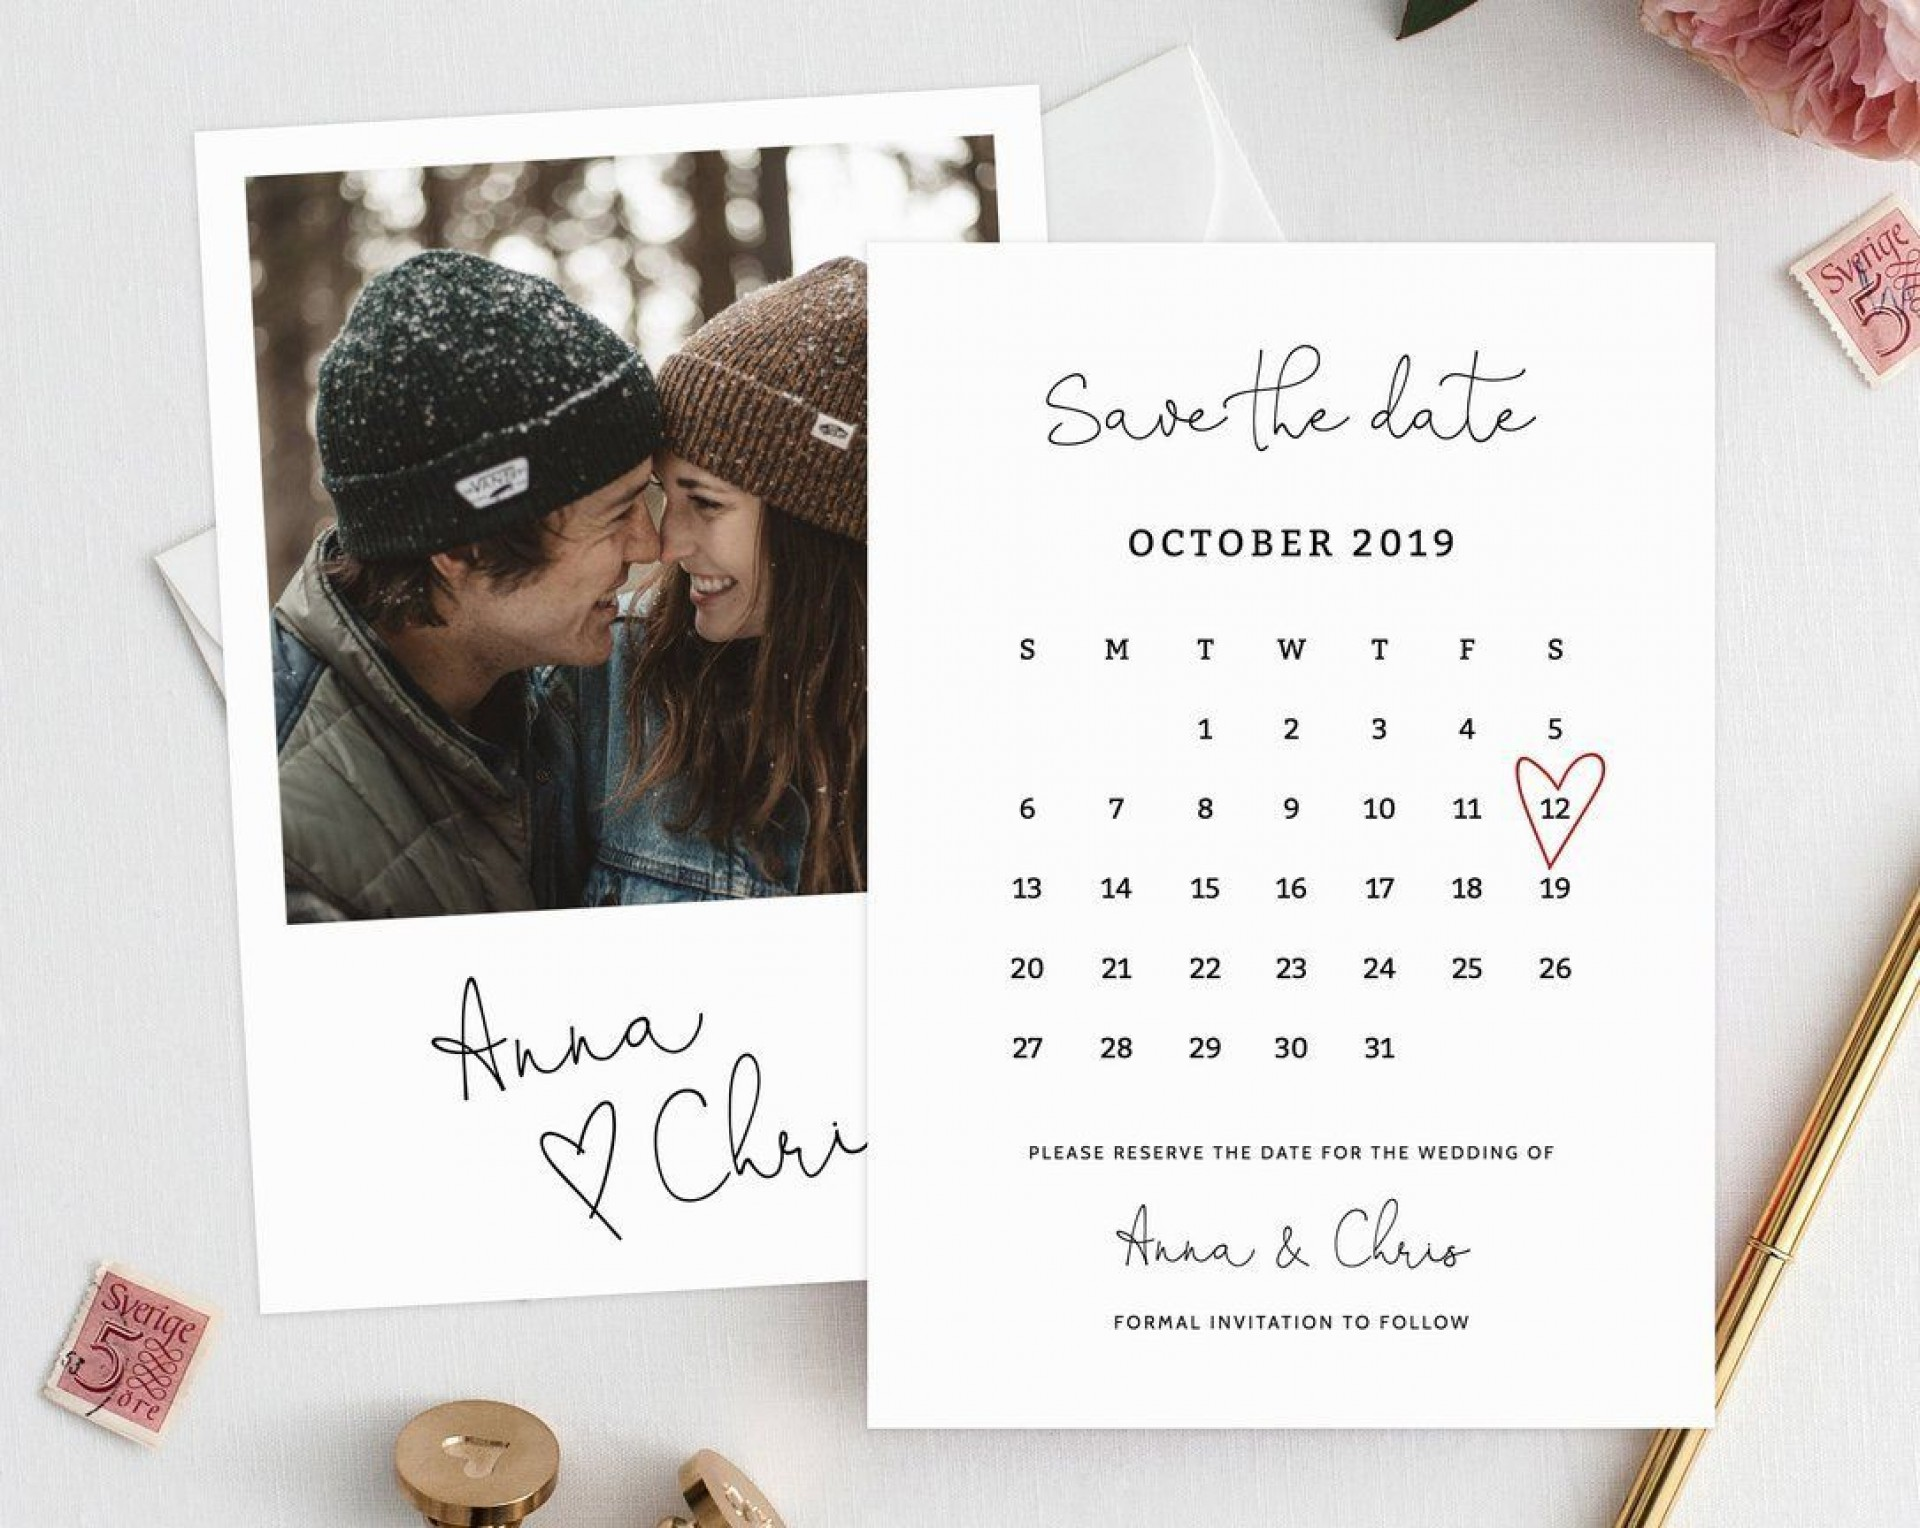 005 Wondrou Free Save The Date Birthday Postcard Template Highest Quality  Templates1920